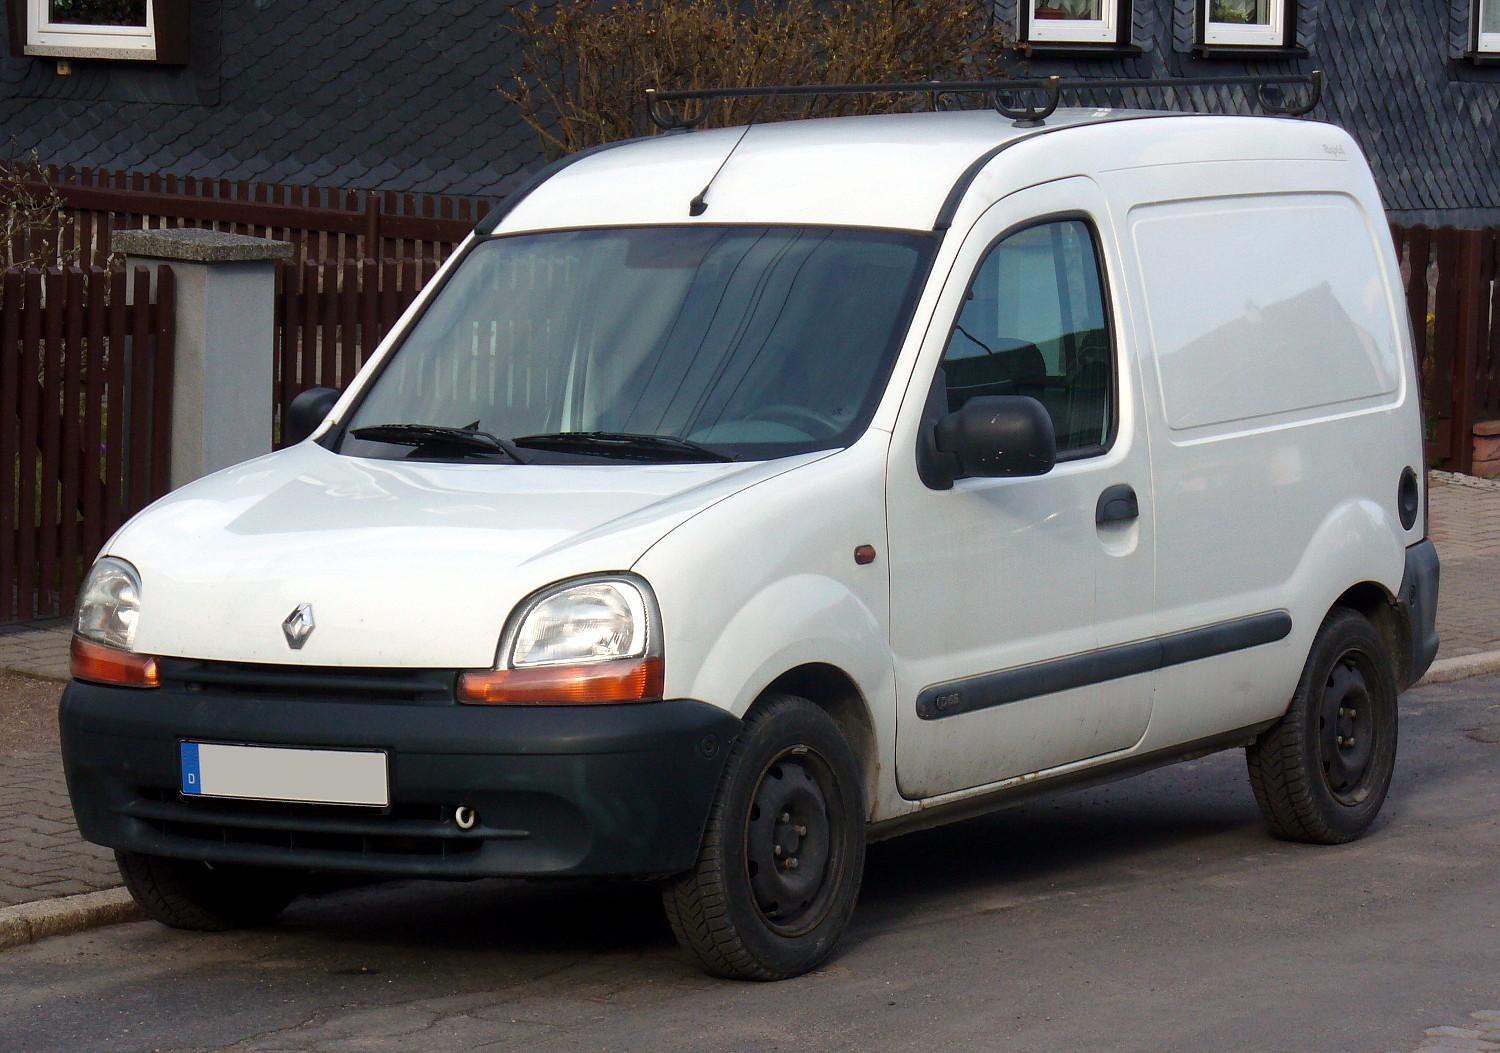 file renault kangoo i rapid phase i d65 jpg wikimedia commons. Black Bedroom Furniture Sets. Home Design Ideas